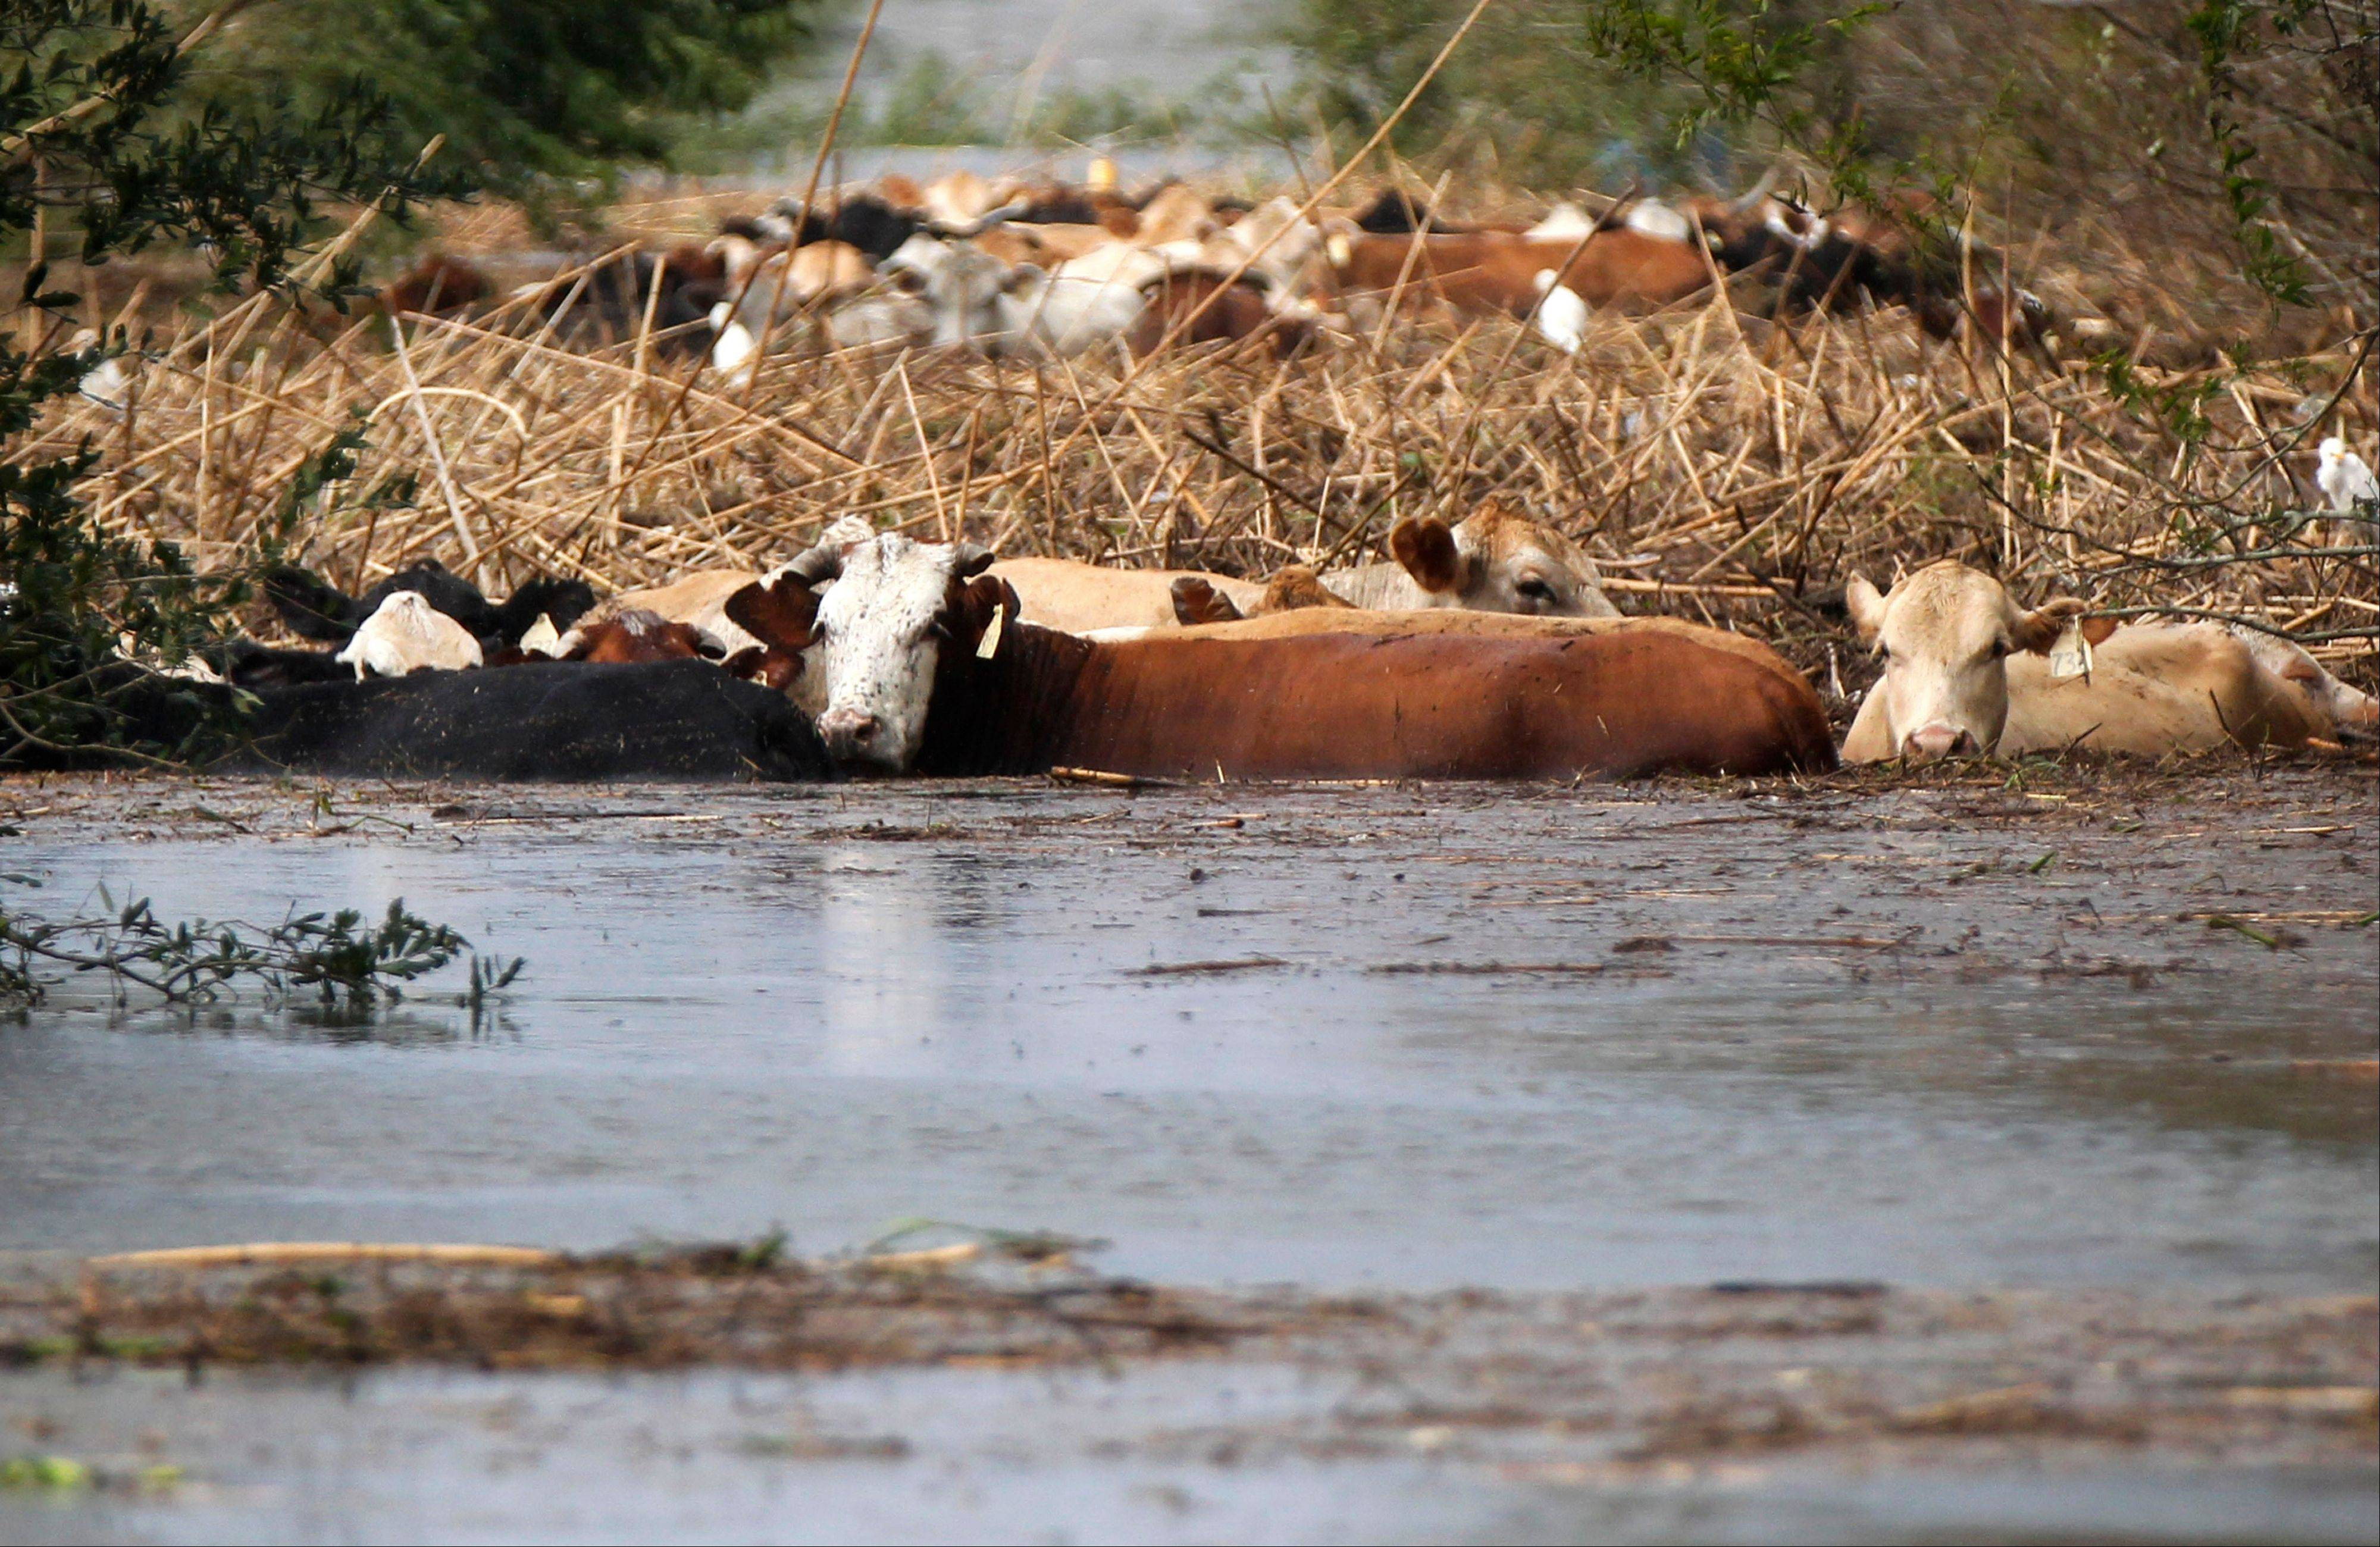 Cows are stranded in floodwater after Isaac came through the region, in Plaquemines Parish, La., Thursday, Aug. 30, 2012.